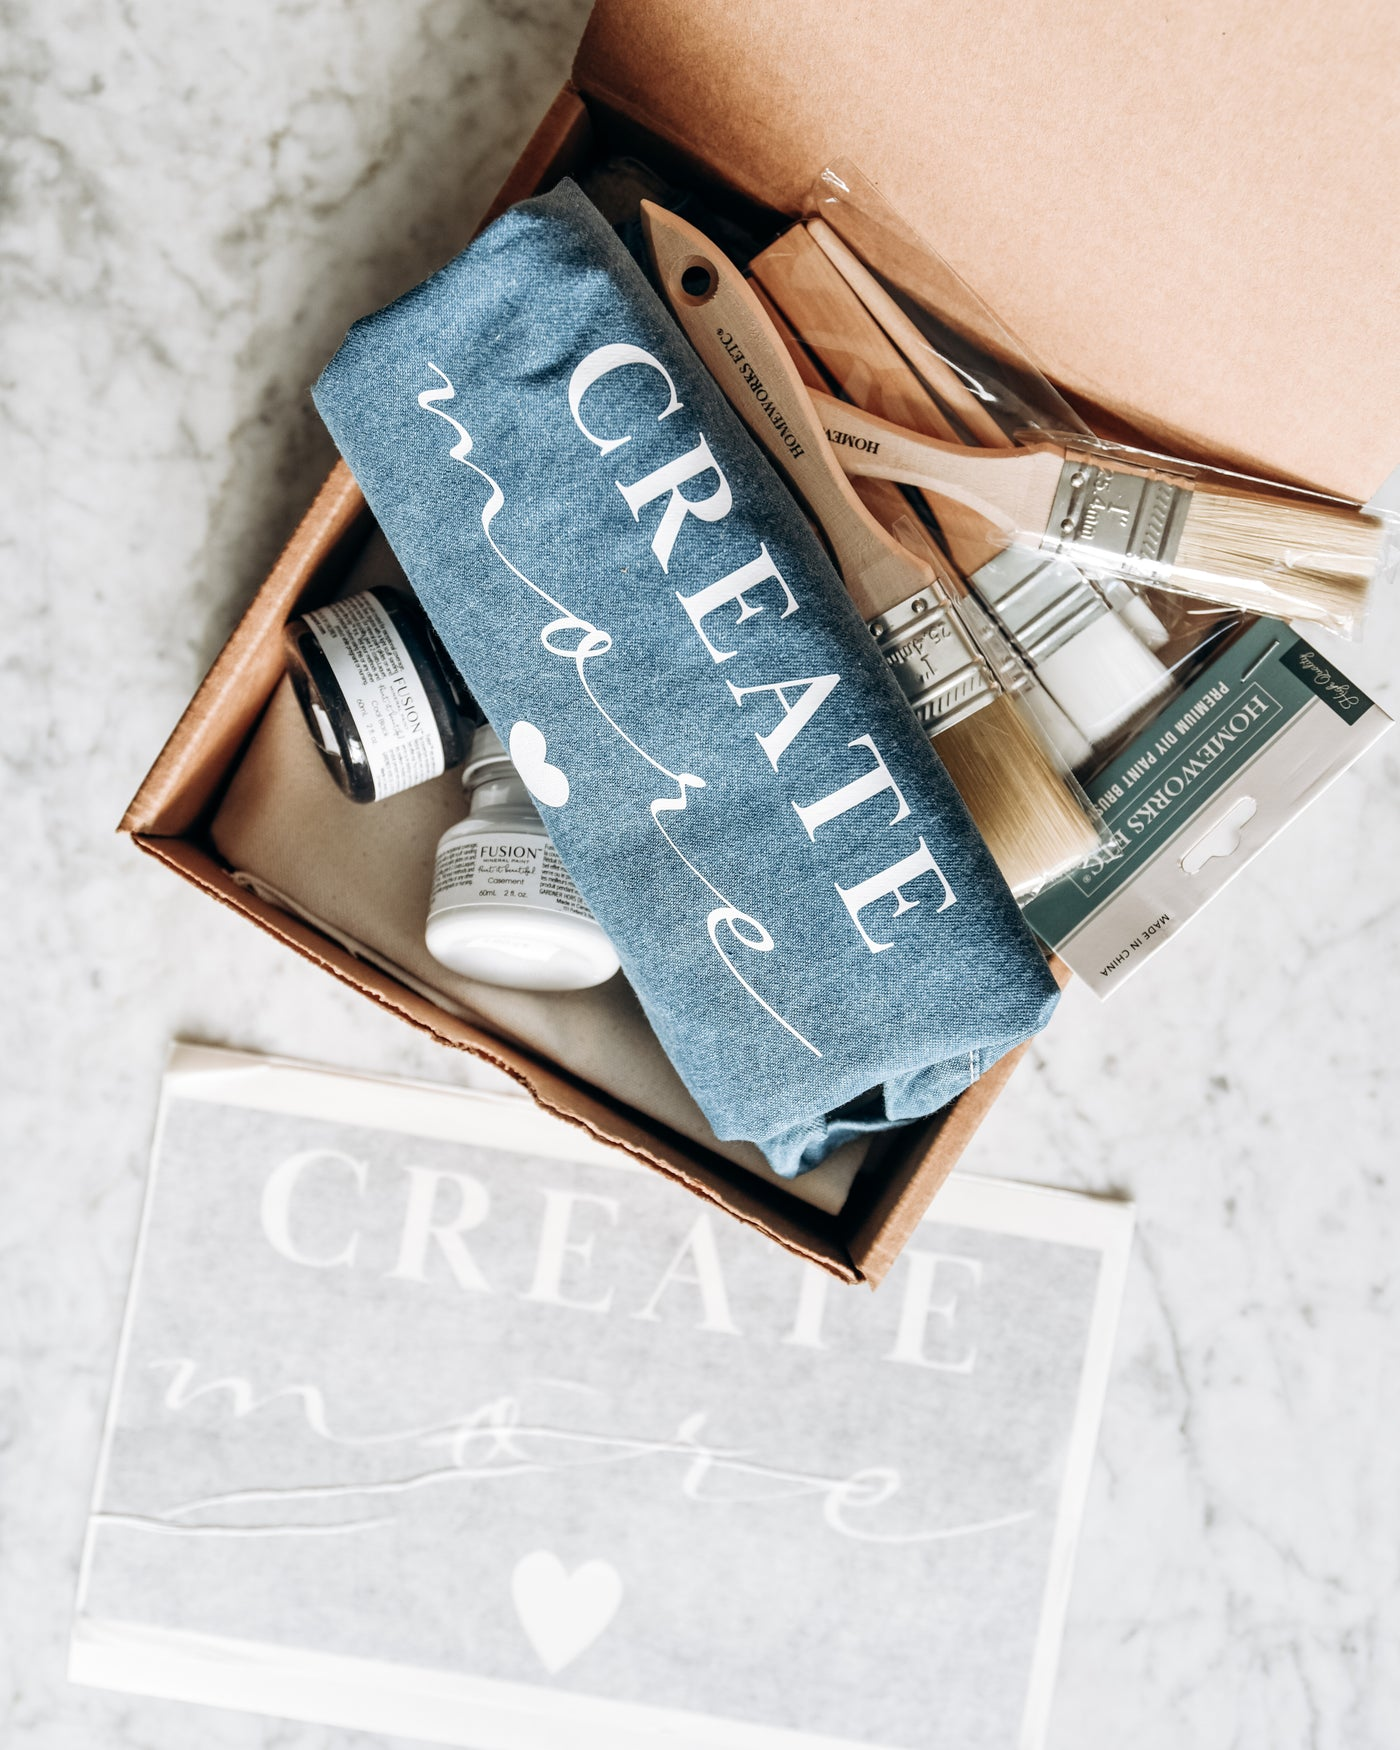 Introducing Our Create More Collection!